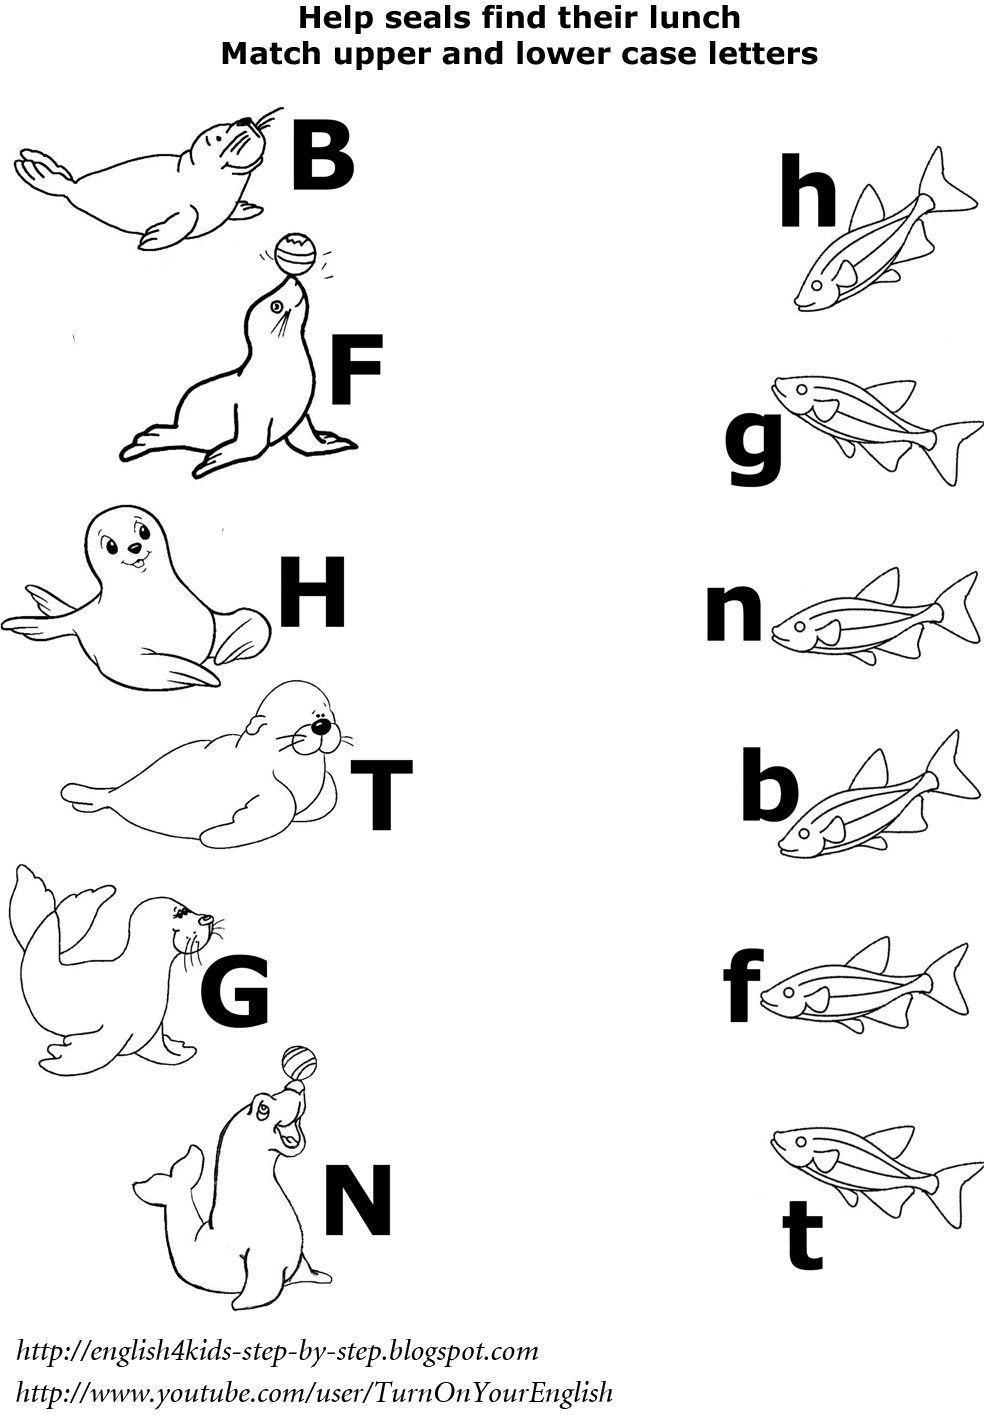 animal printables for kindergarten arctic animals matching upper and lower case letters printables animal for kindergarten